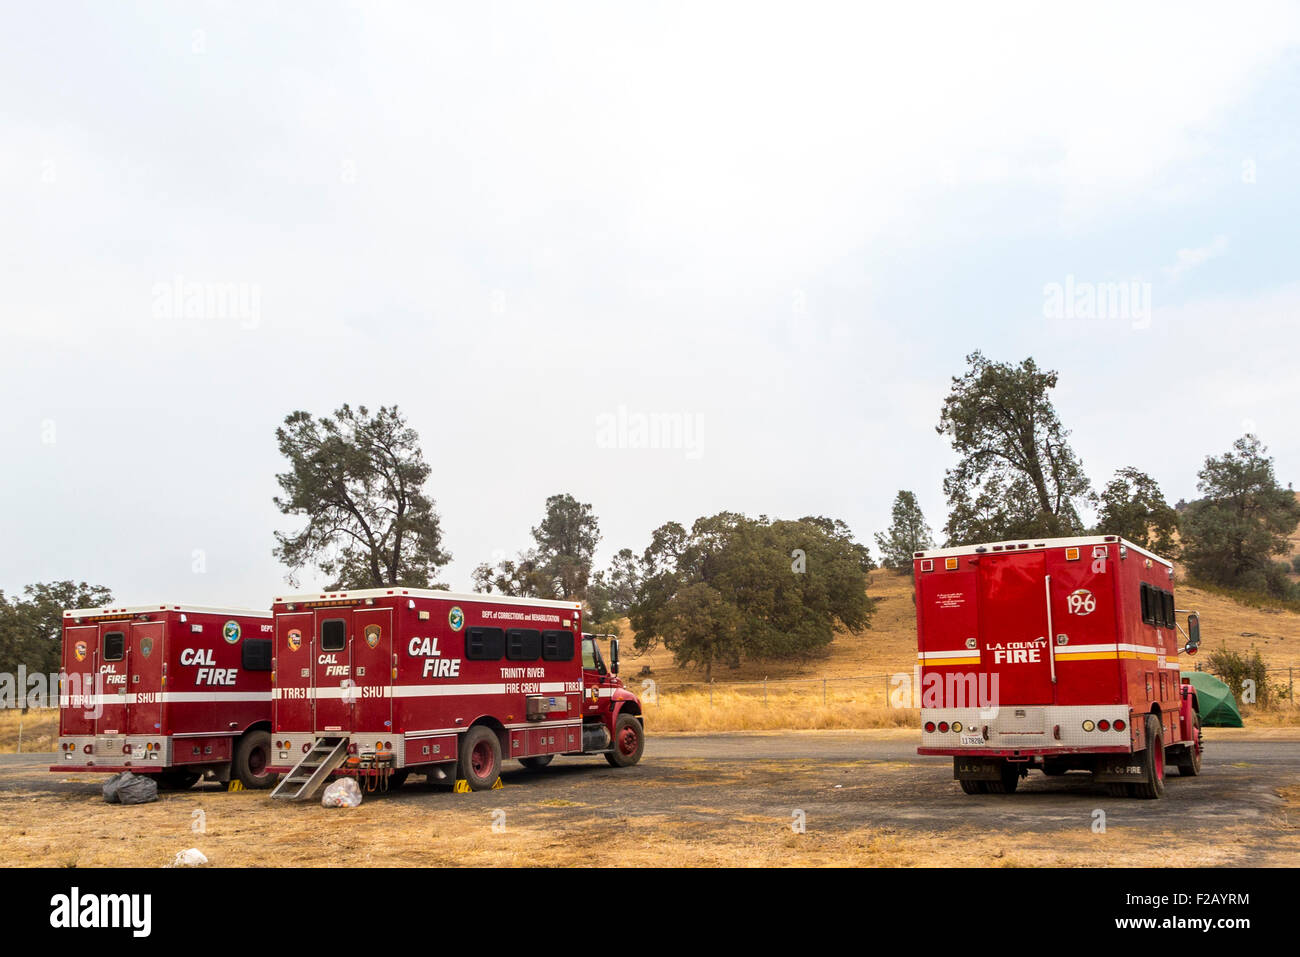 Three Calfire trucks at the Calaveras County Fairgrounds in Angels camp California there to fight the Butte Fire. - Stock Image